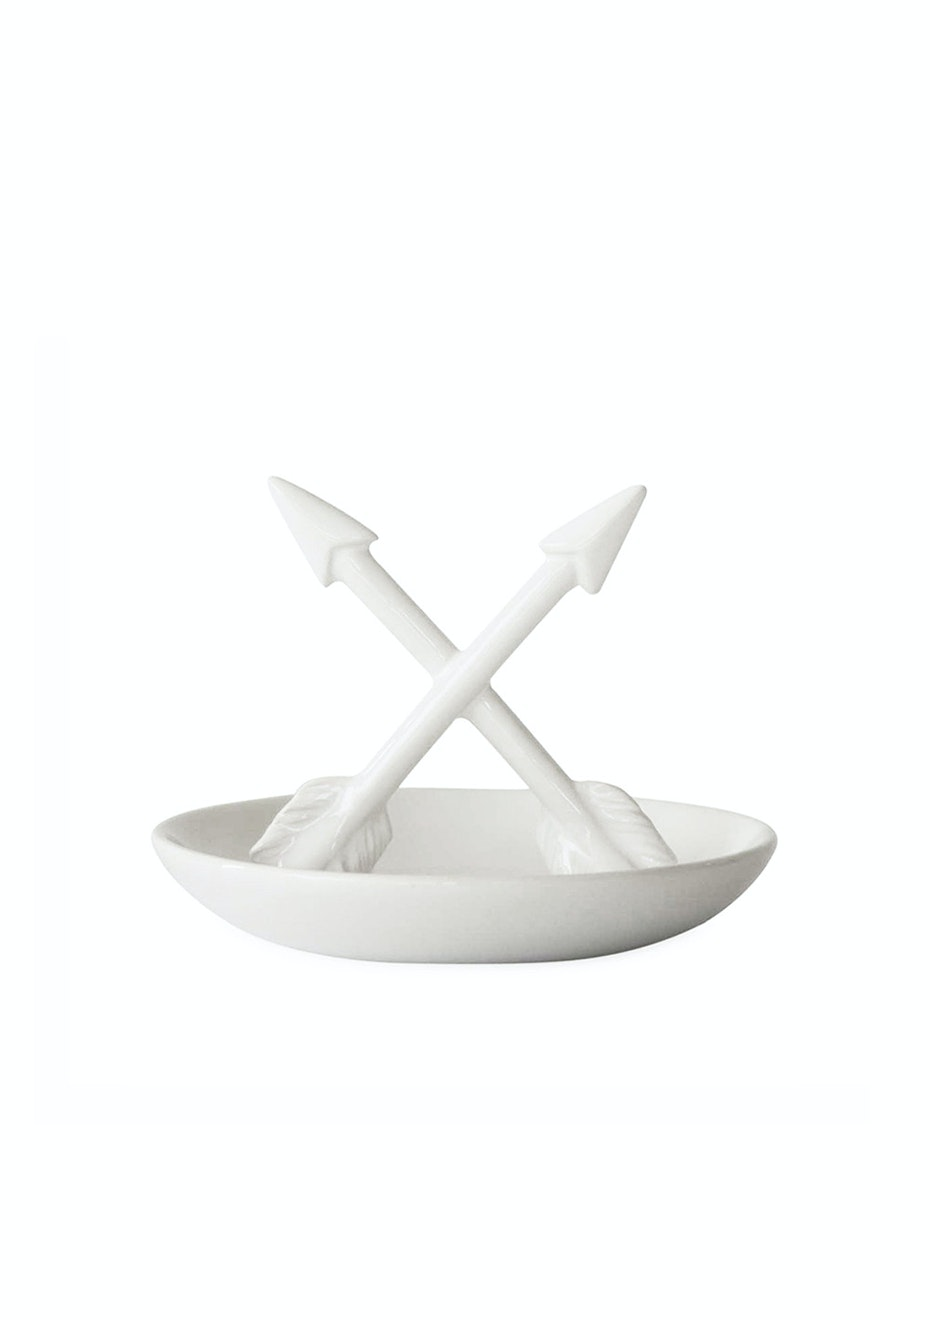 Me & My Trend - Arrows Ring Tray